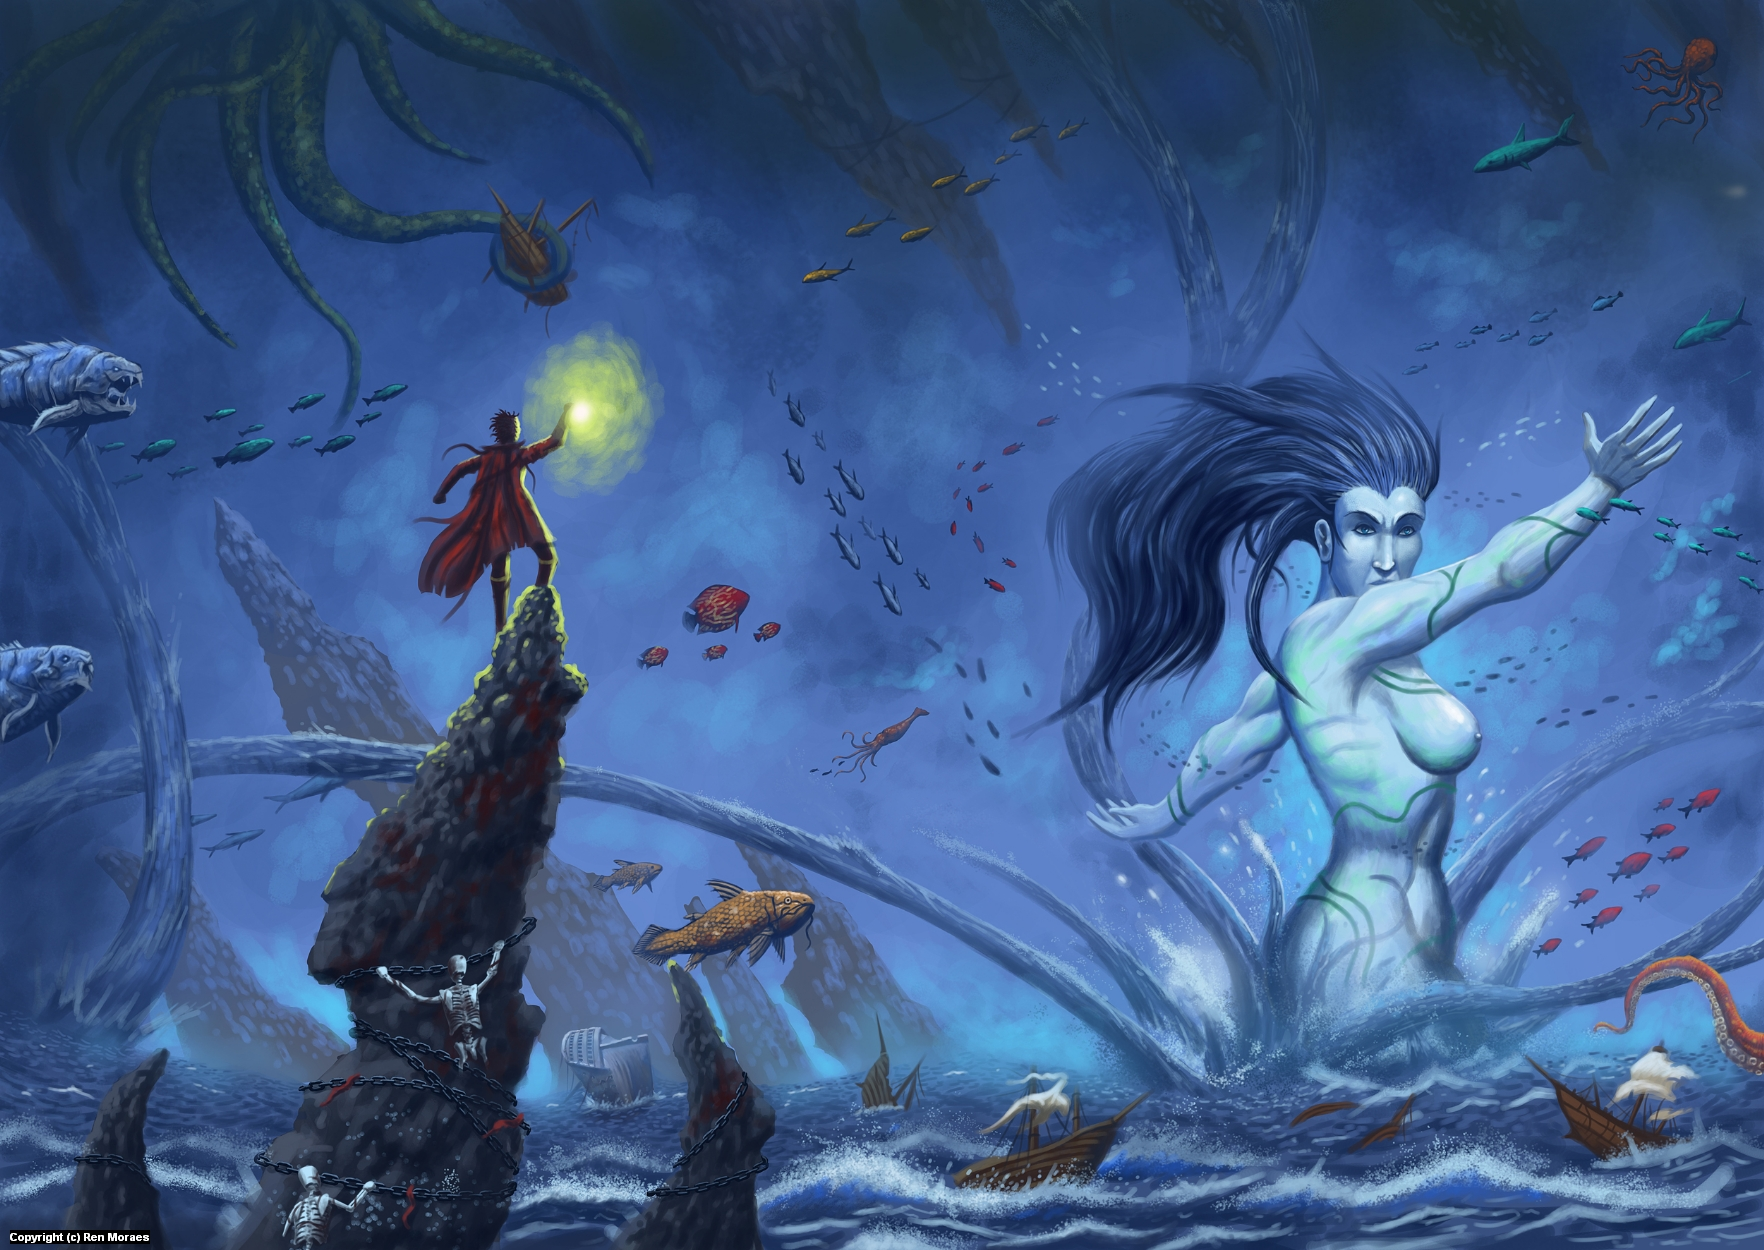 Maelstrom Maiden Artwork by Renan Moraes